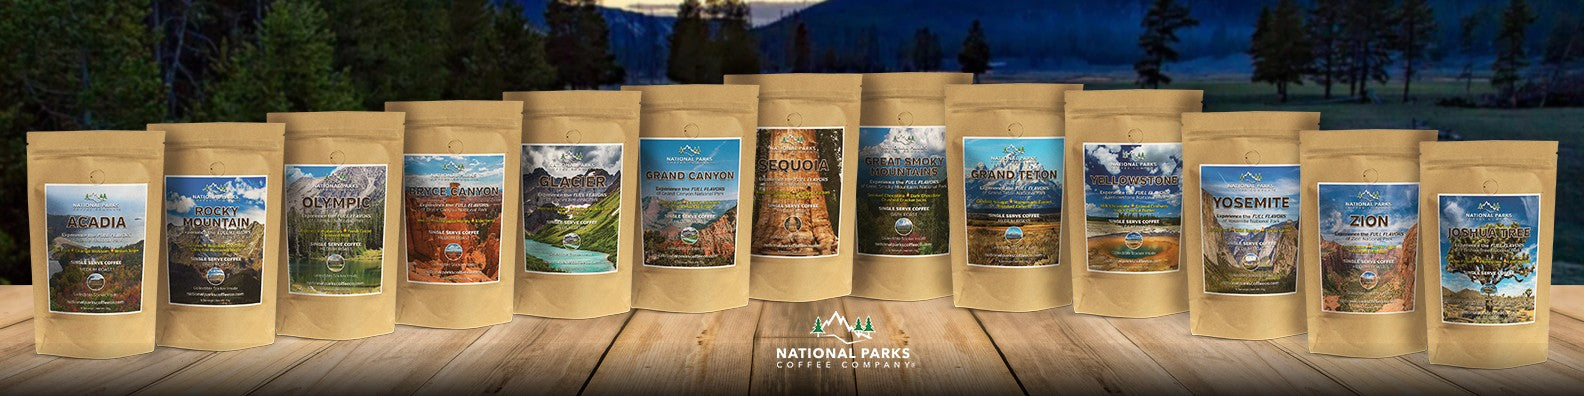 National Parks Coffee Collection